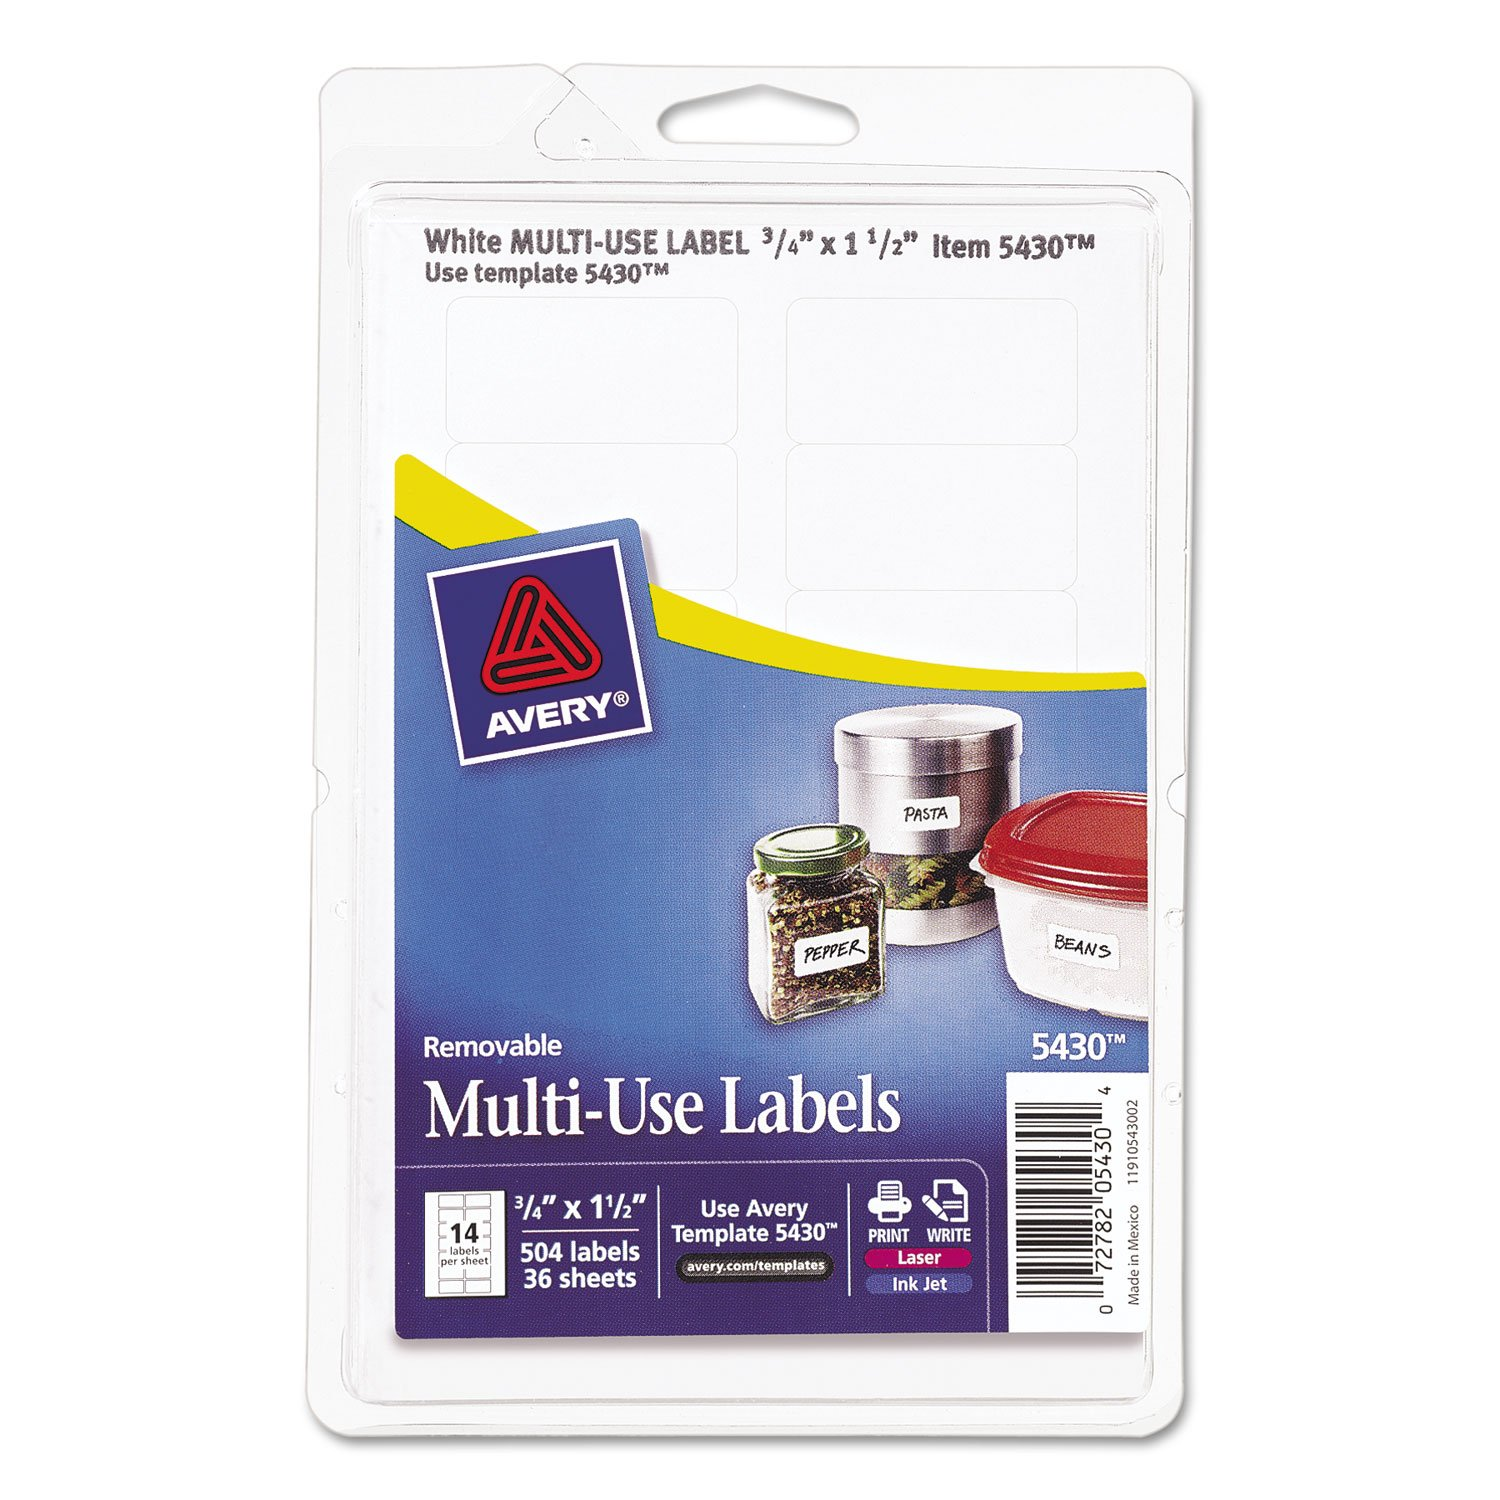 avery removable multi use labels 3 4 x 1 1 2 white 504 pack doba